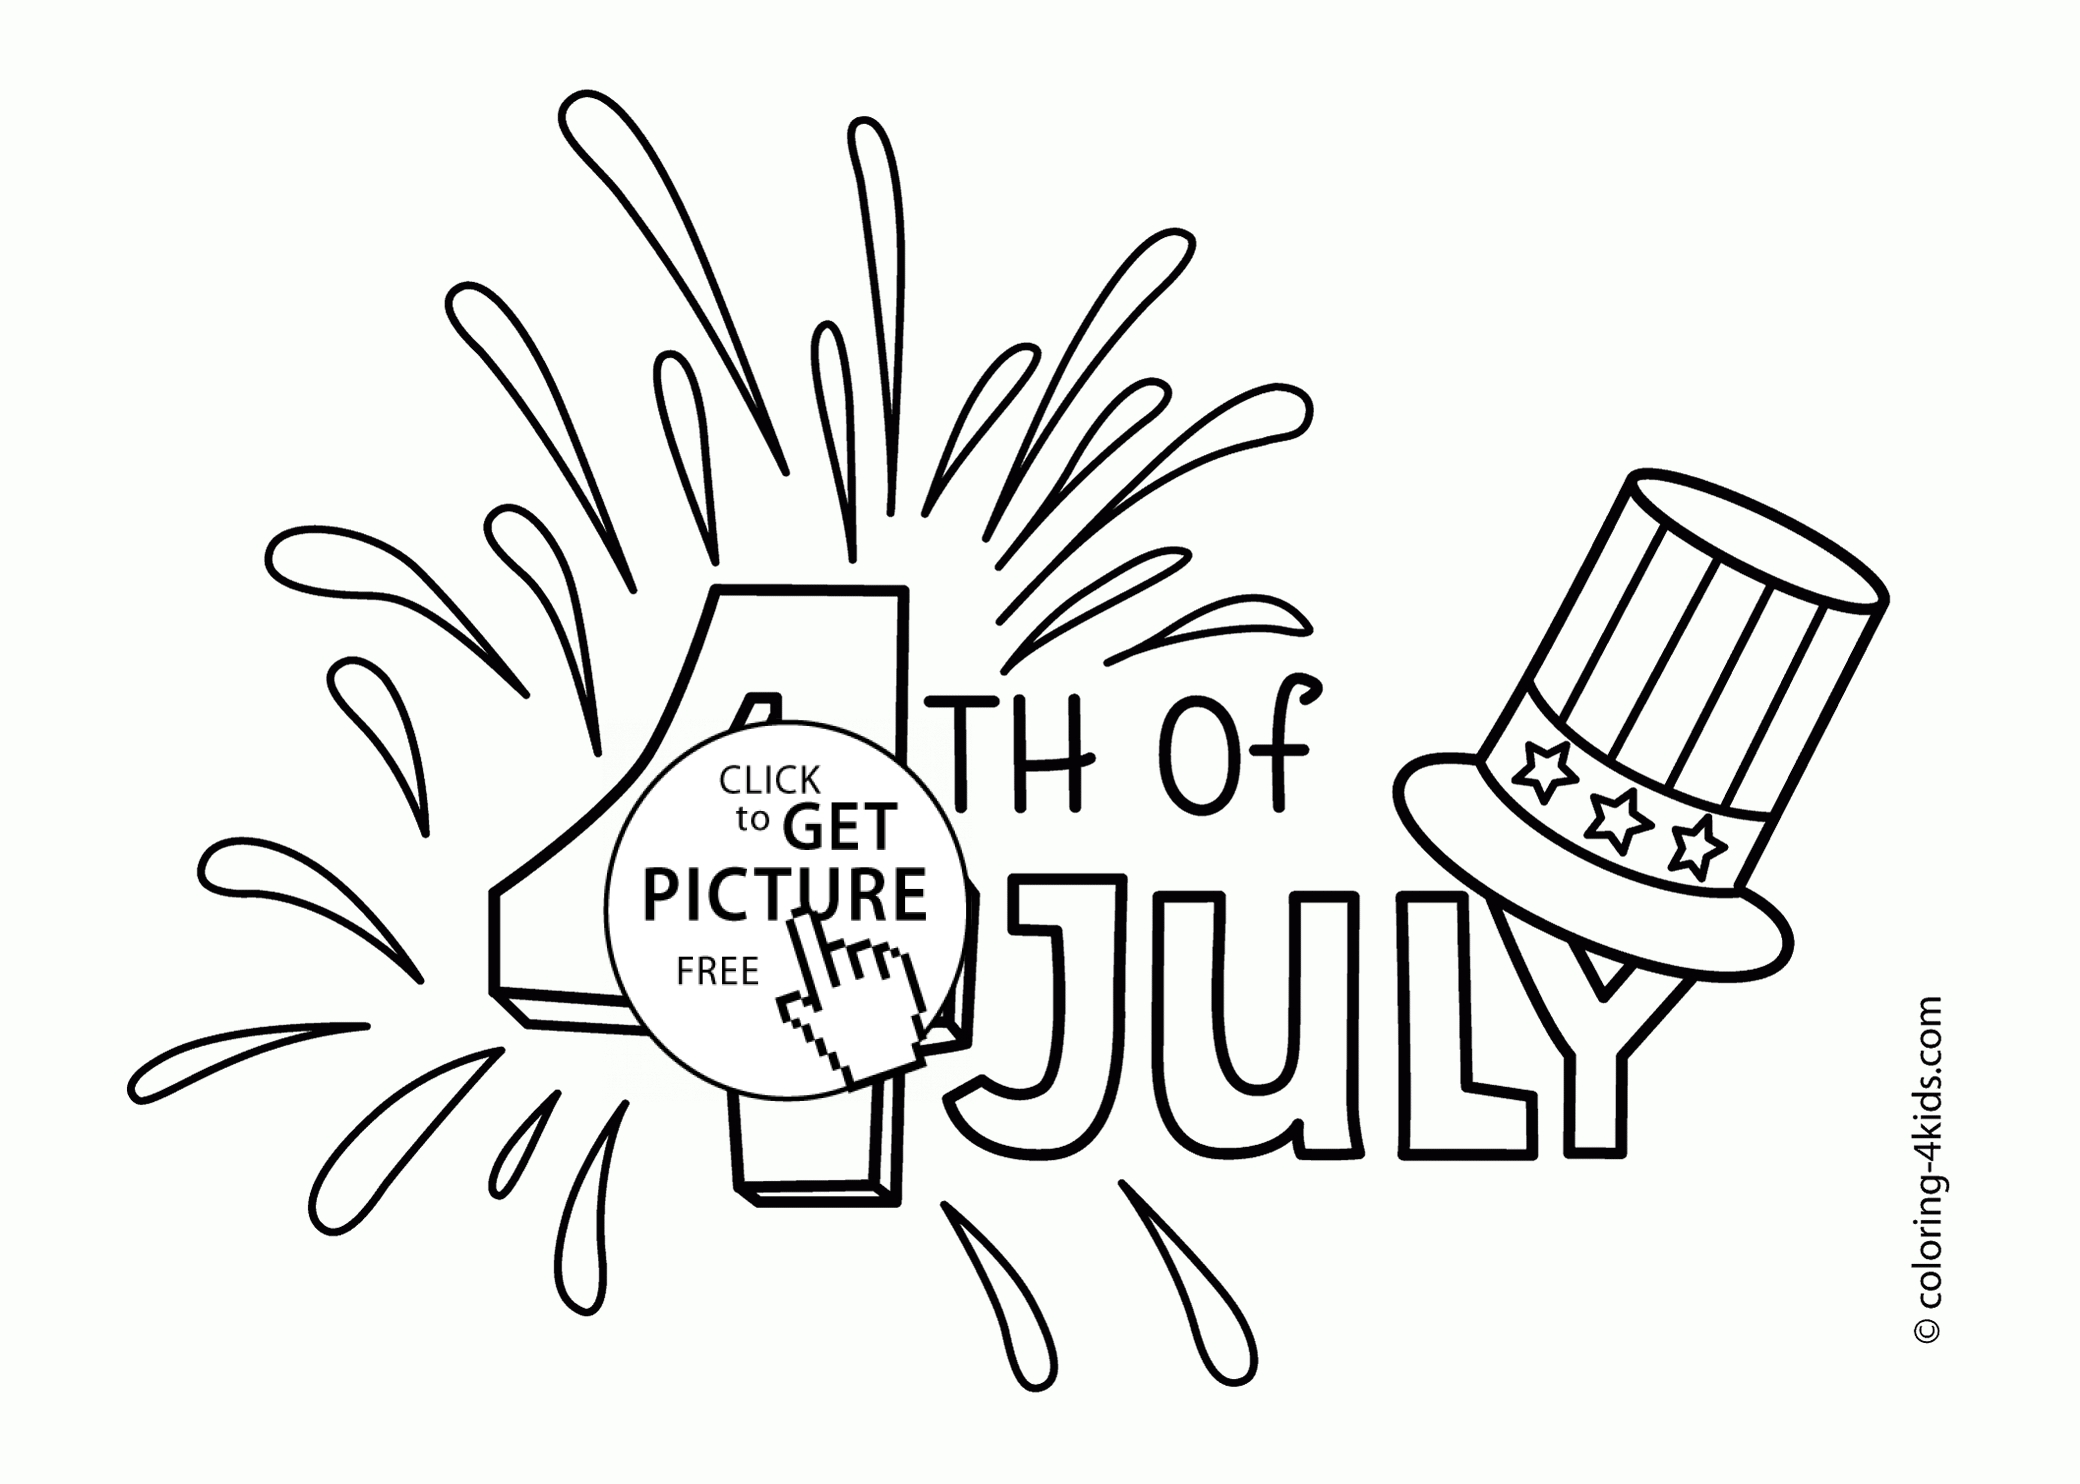 fourth of july coloring pages - fourth of july coloring pages